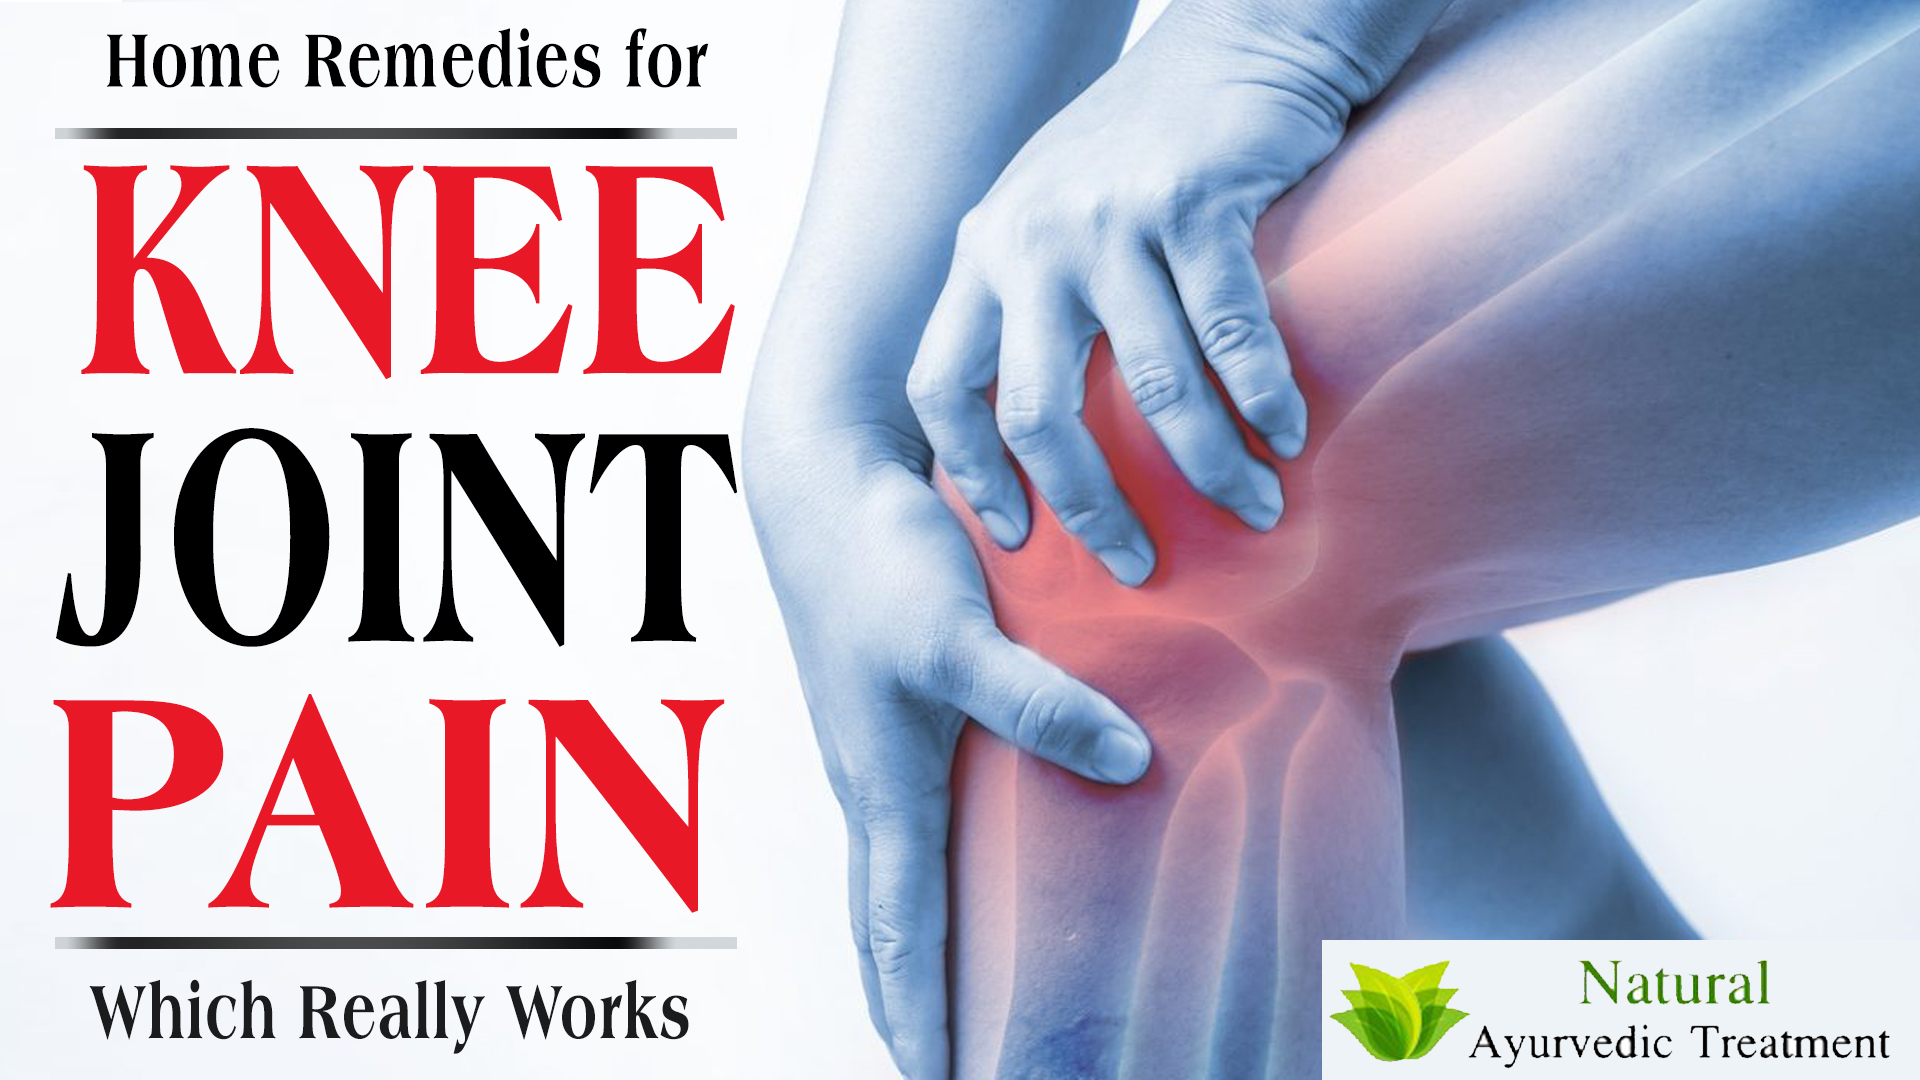 Top 6 Home Remedies for Knee Joint Pain Which Really Works